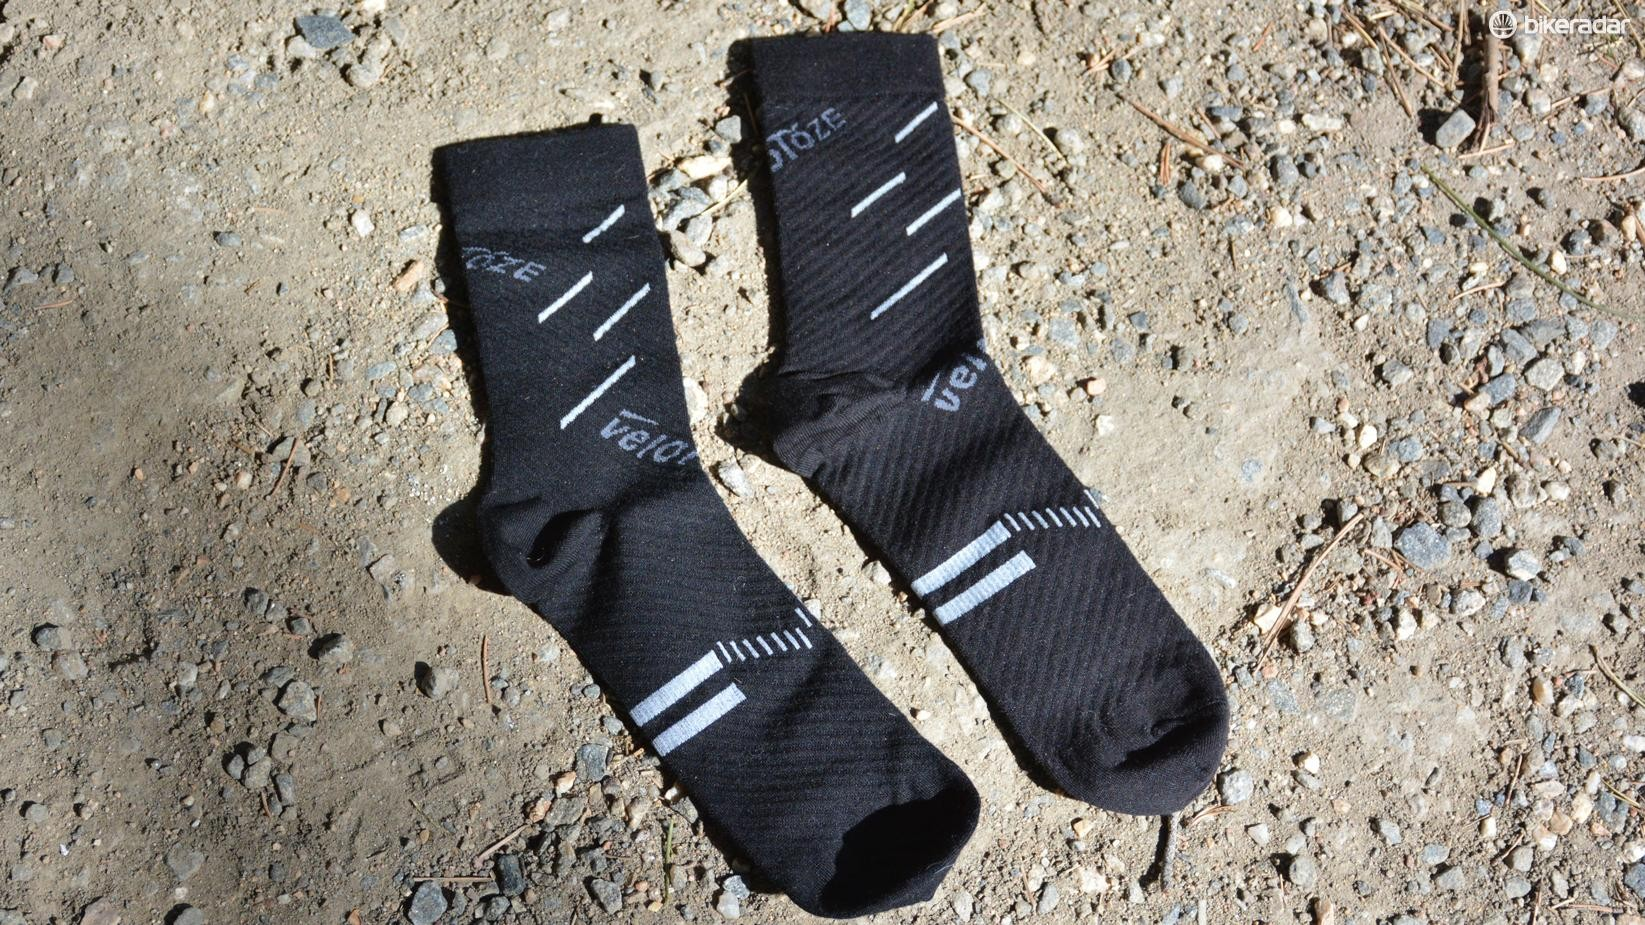 Velotoze socks partner wool with a bit of compression